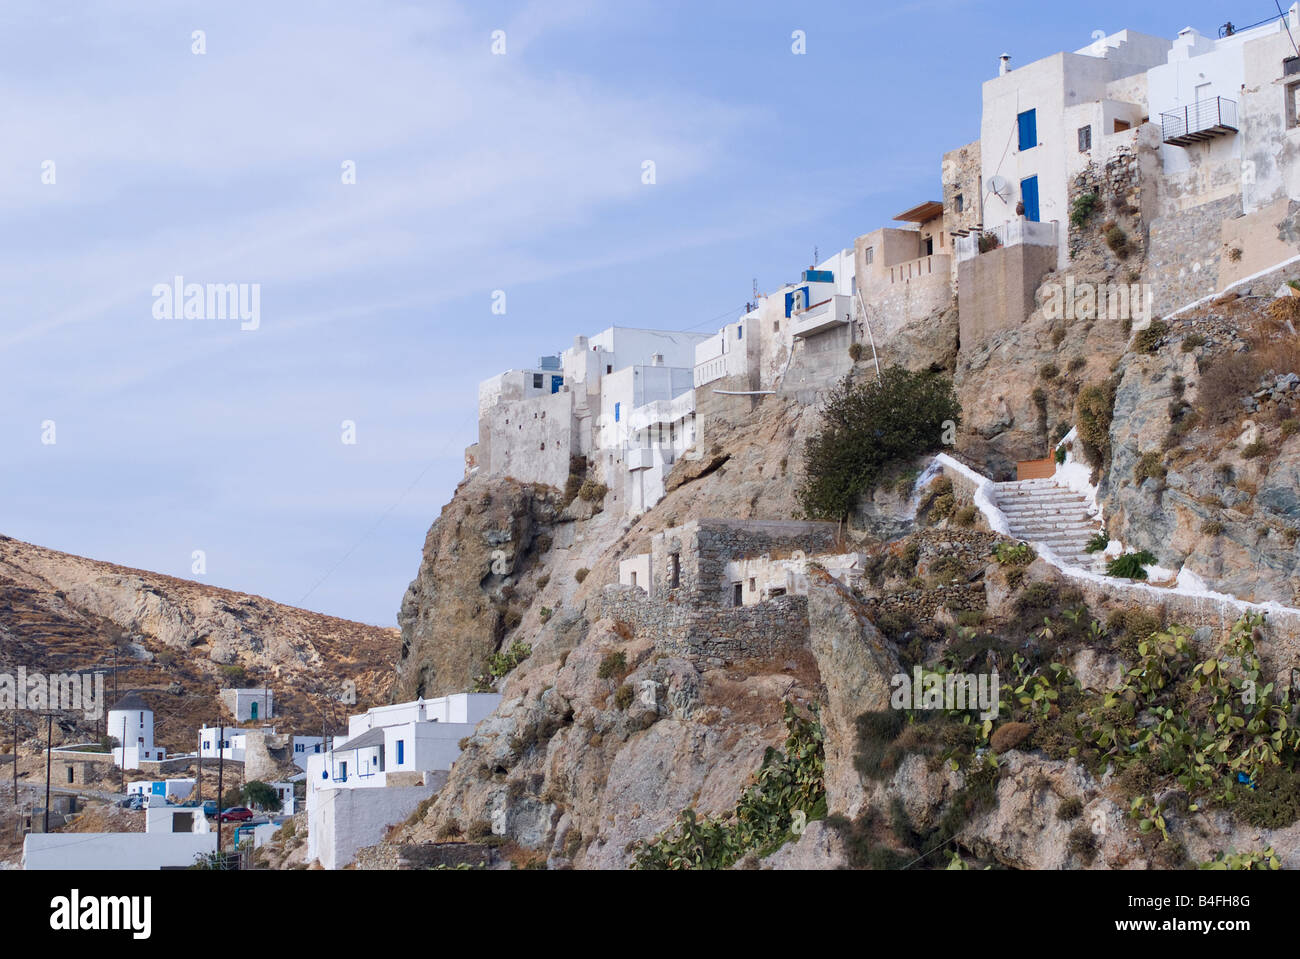 houses built into cliff top fortress in upper town chora isle of stock photo royalty free image. Black Bedroom Furniture Sets. Home Design Ideas